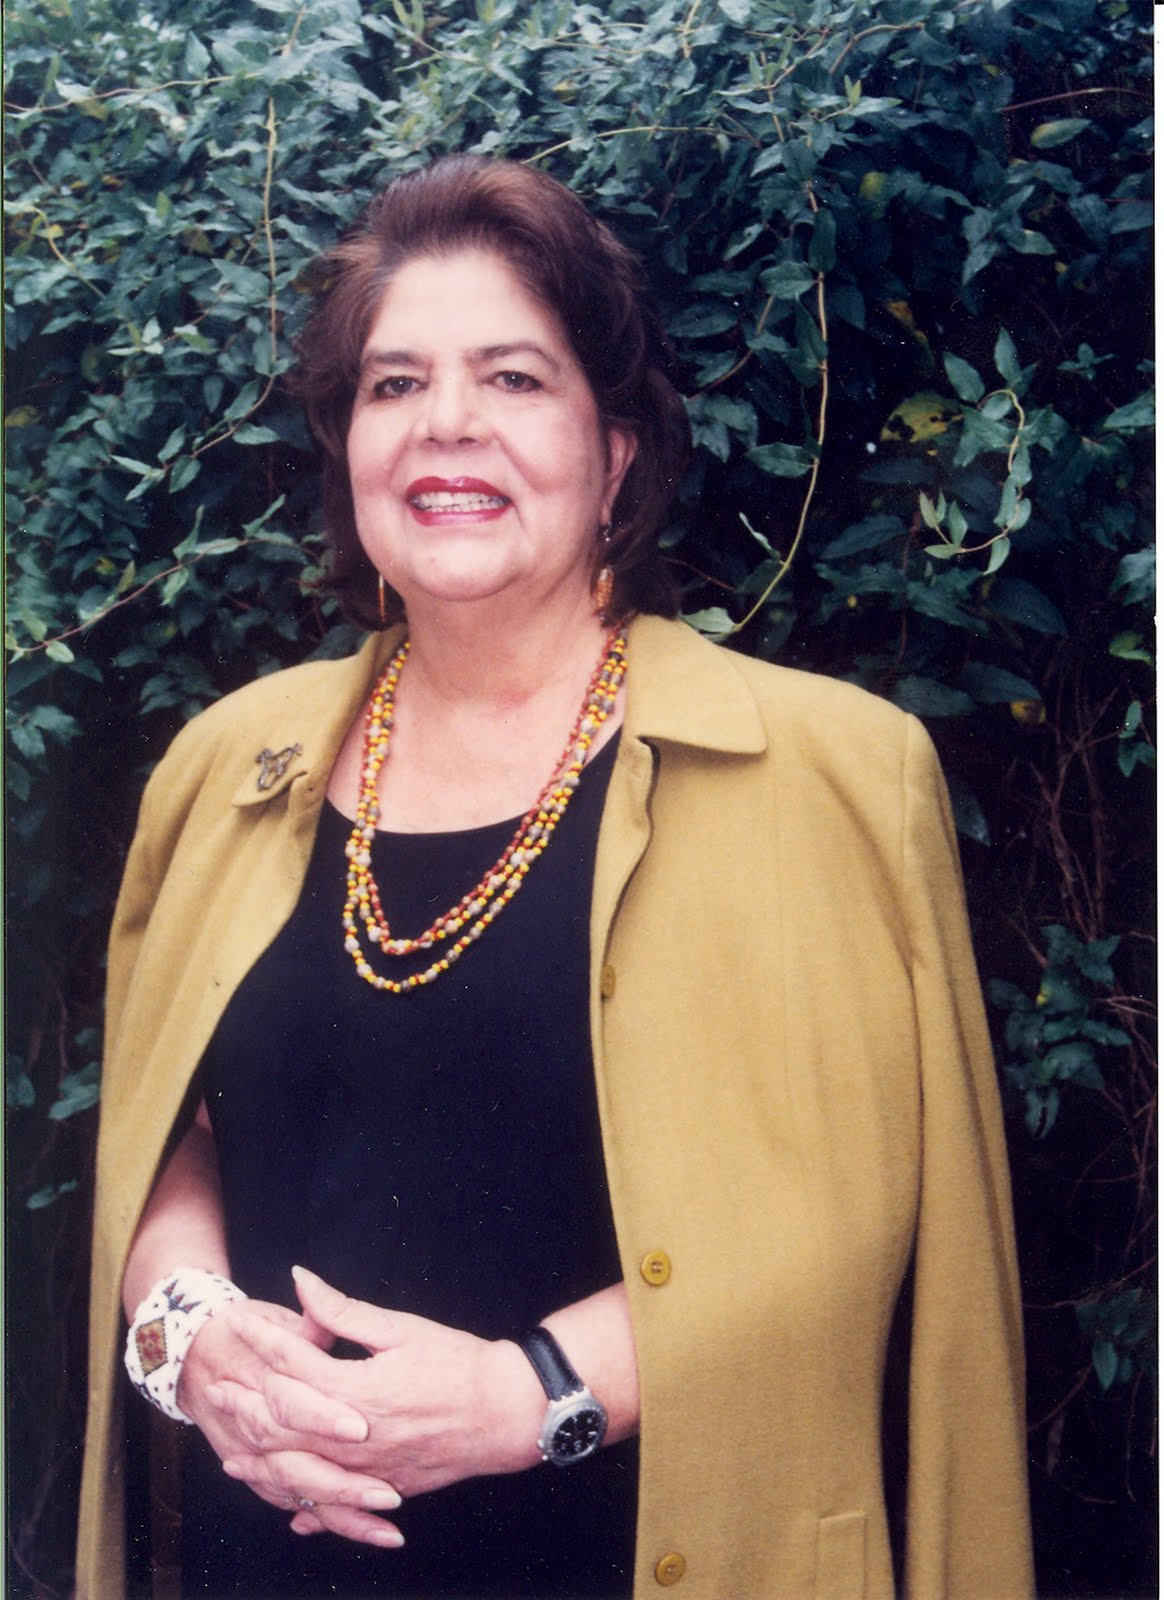 biography of wilma mankiller essay Wilma mankiller is a former chief of the cherokee people who died in 2010 in this book, she weaves her own biography into a larger history of the cherokee people while starting each chapter with short excerpts that are related to the creation myths and values of the cherokee people.